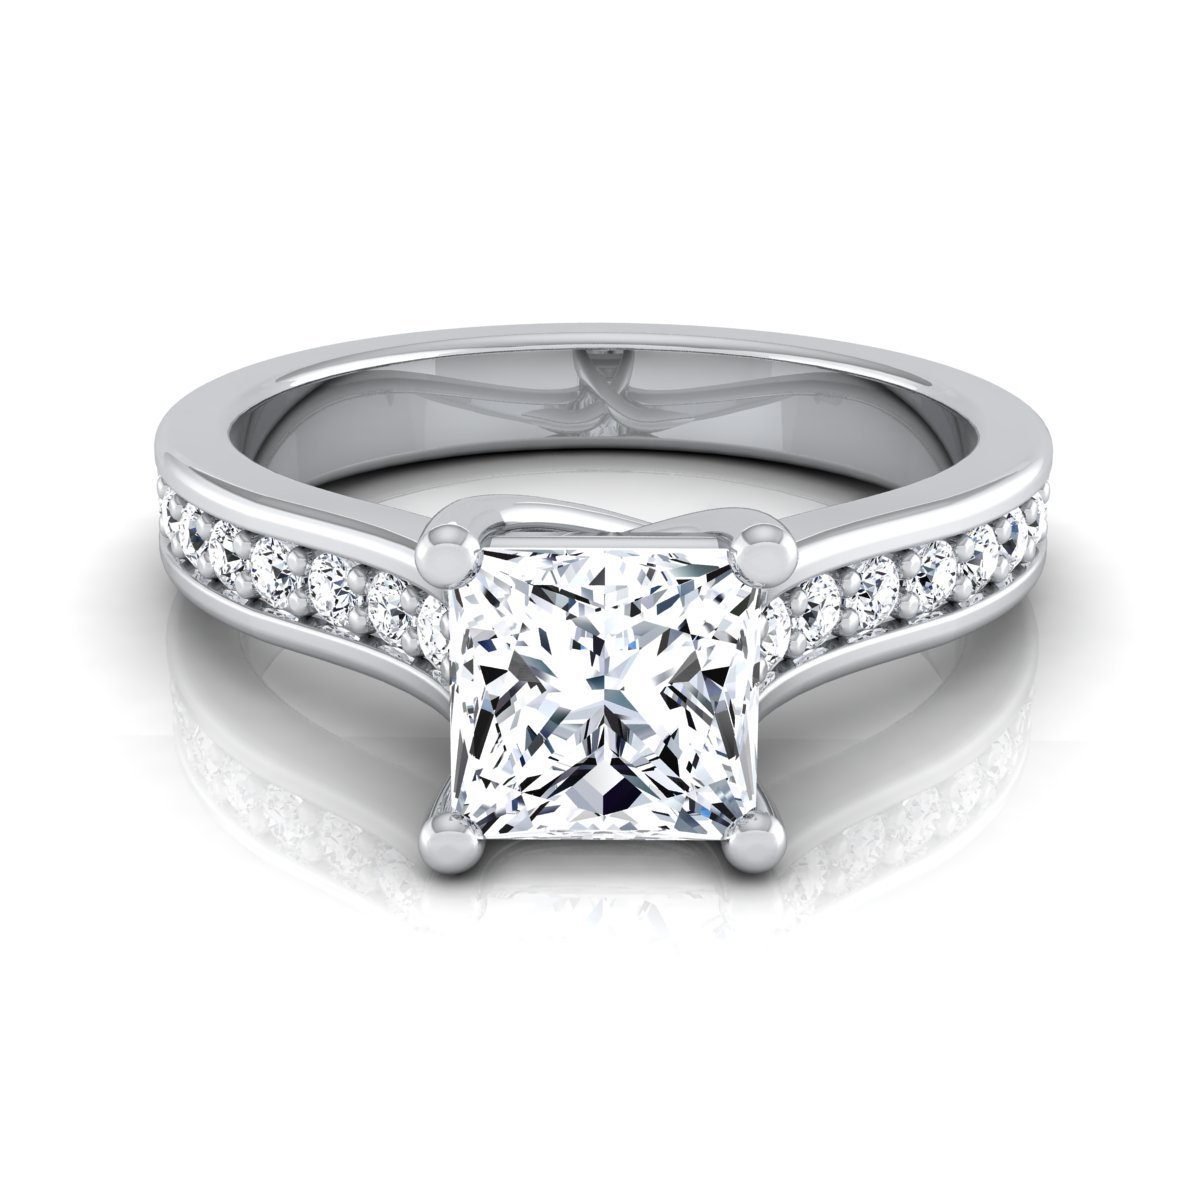 14K White Gold Igi Certified 1 1/3Ct Tdw Princess Cut Diamond Solitaire  Engagement Ring With Regard To Most Recent Certified Princess Cut Diamond Anniversary Bands In White Gold (View 3 of 25)